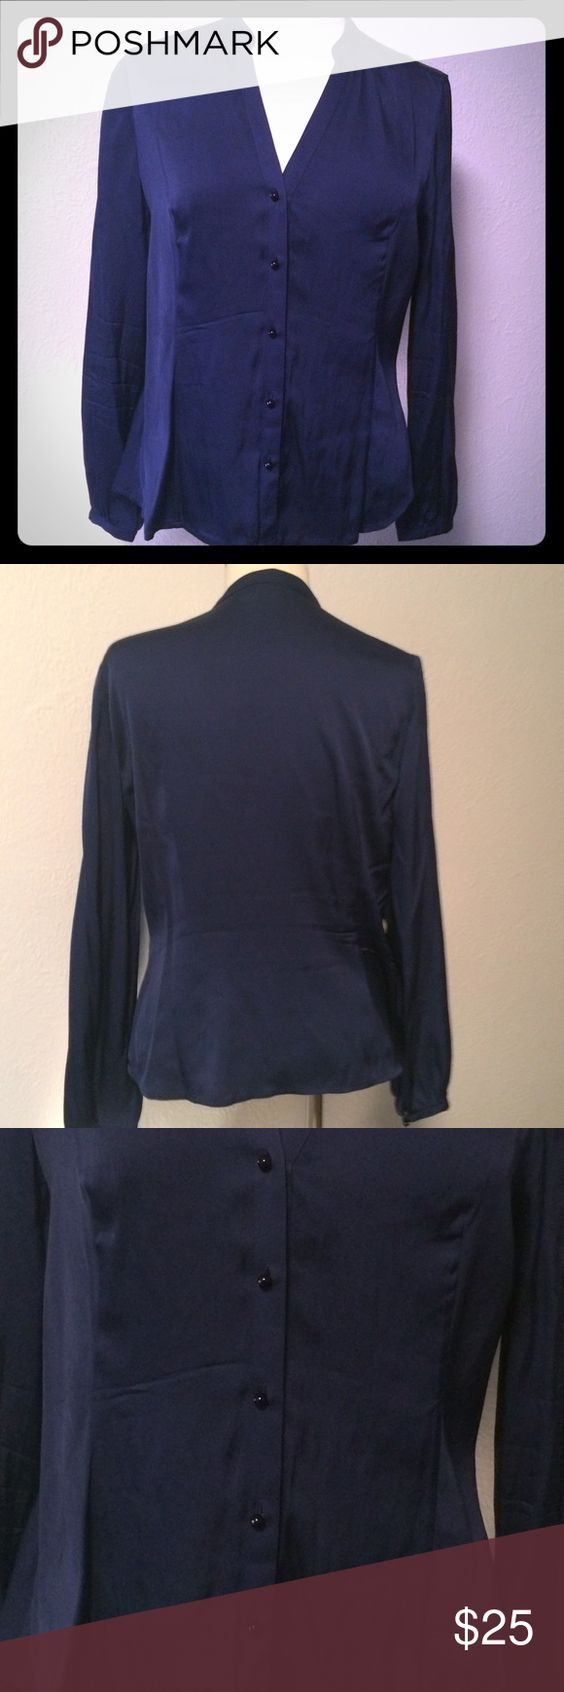 Ann Taylor button up blouse Super soft and silky navy blouse Ann Taylor fitted blouse. In excellent preowned condition. Ann Taylor Tops Blouses